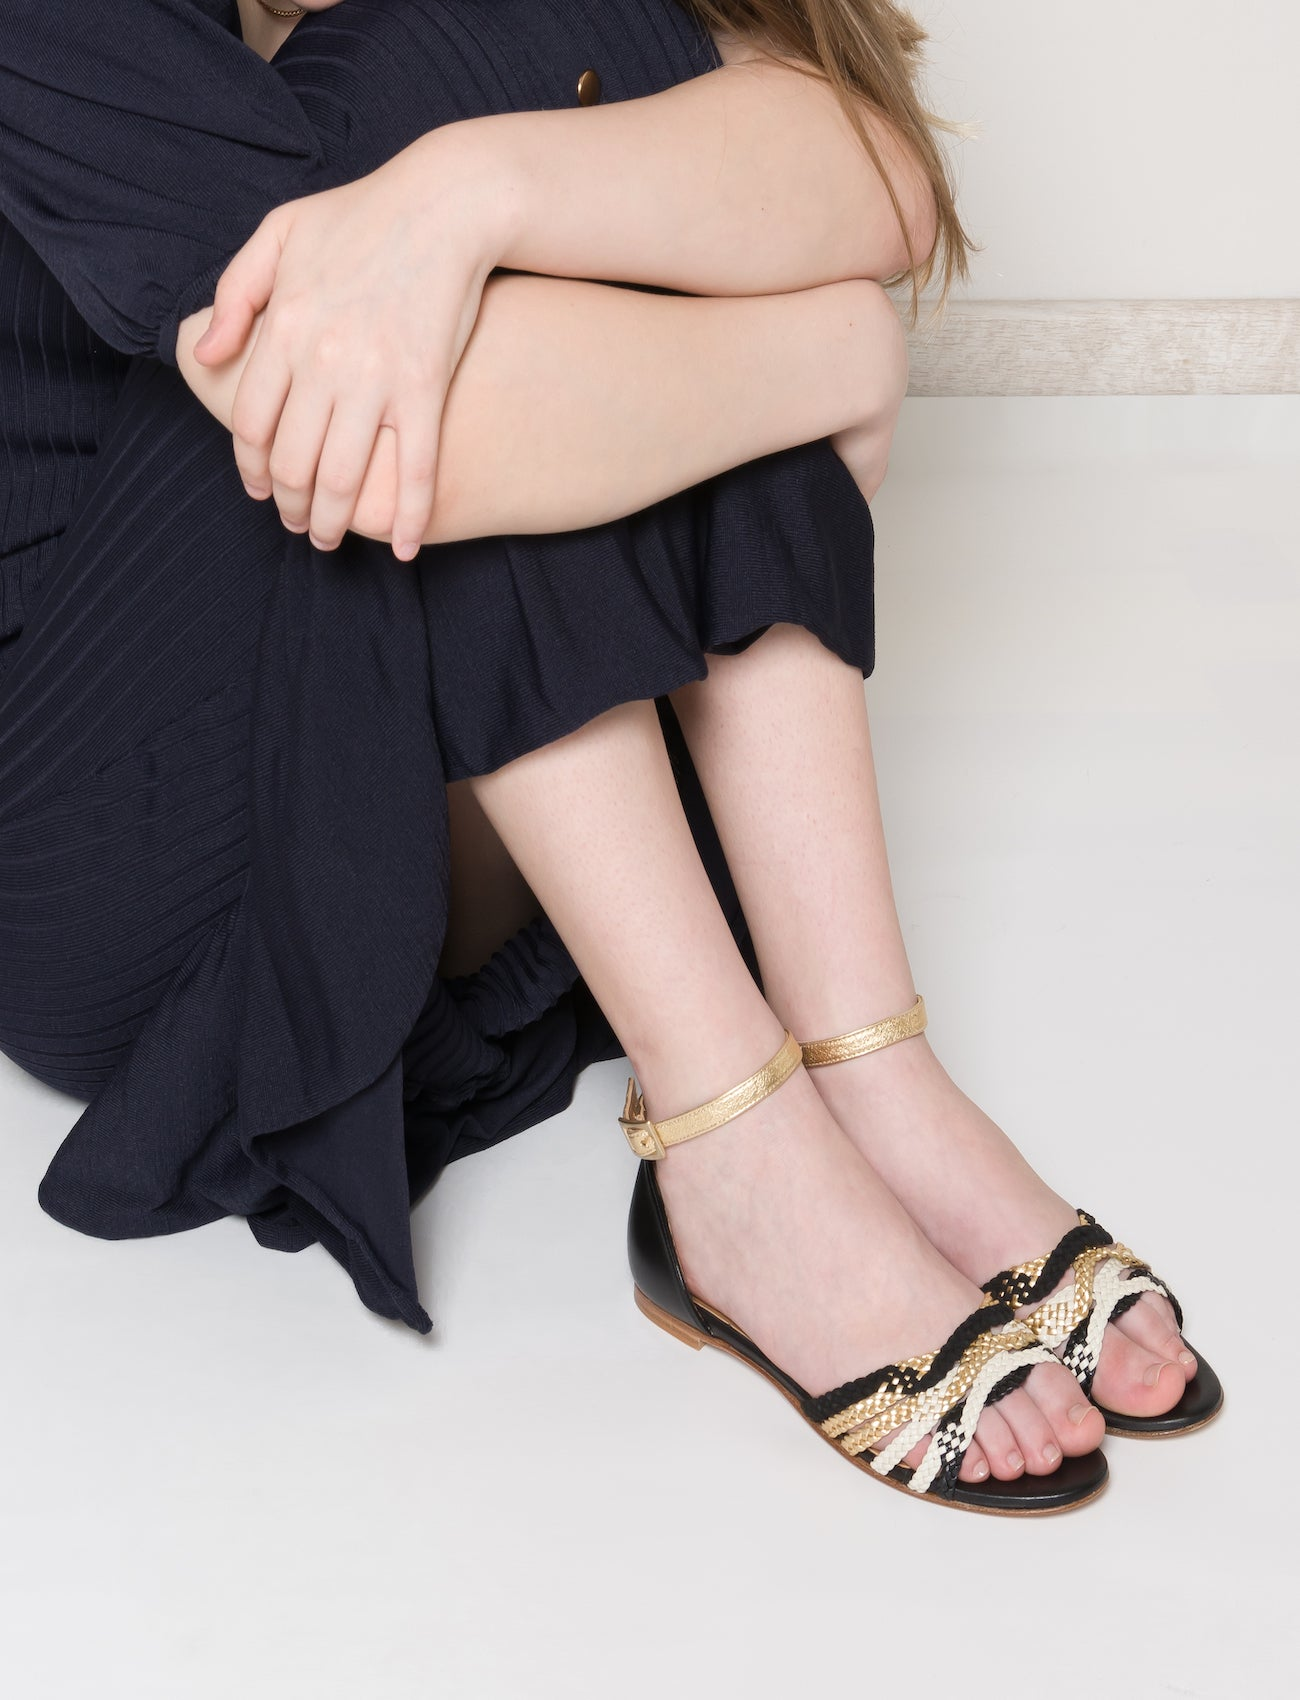 MENPHIS Handbraided Black&Gold Flat Sandals